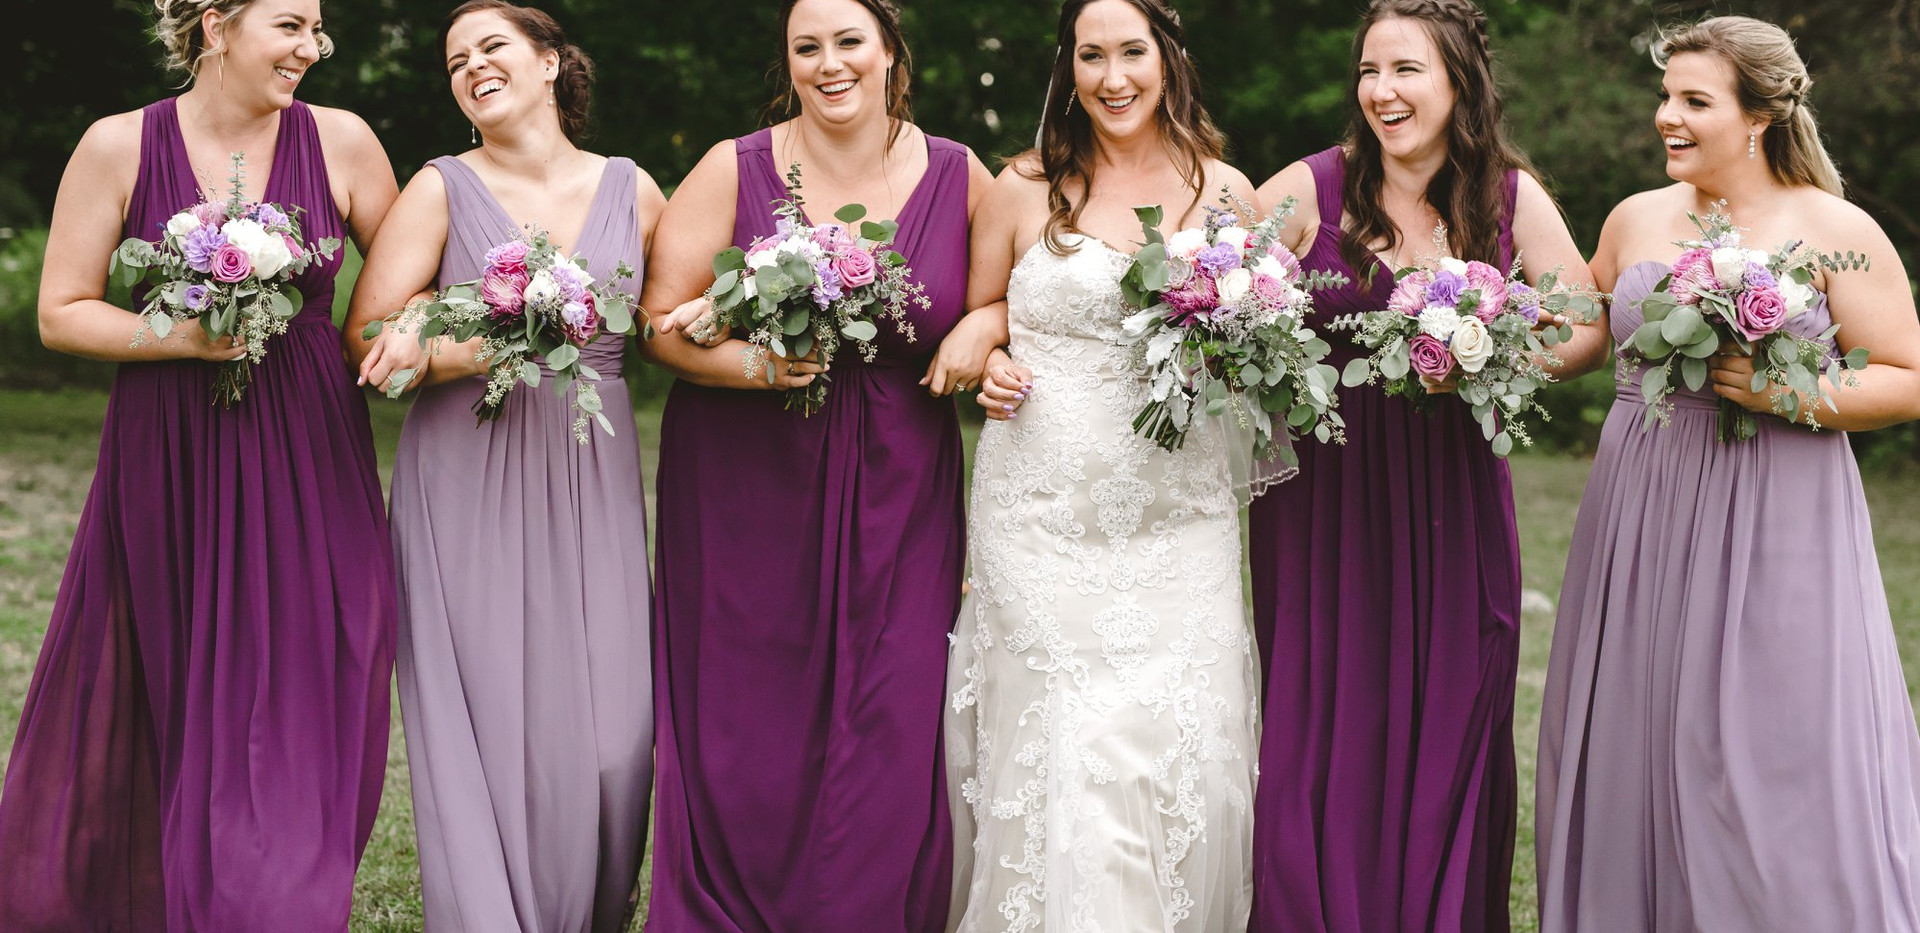 Bridal Party walking with linked arms and bouquets (wearing lavender and merlot mis-matched bridesmaid dresses)